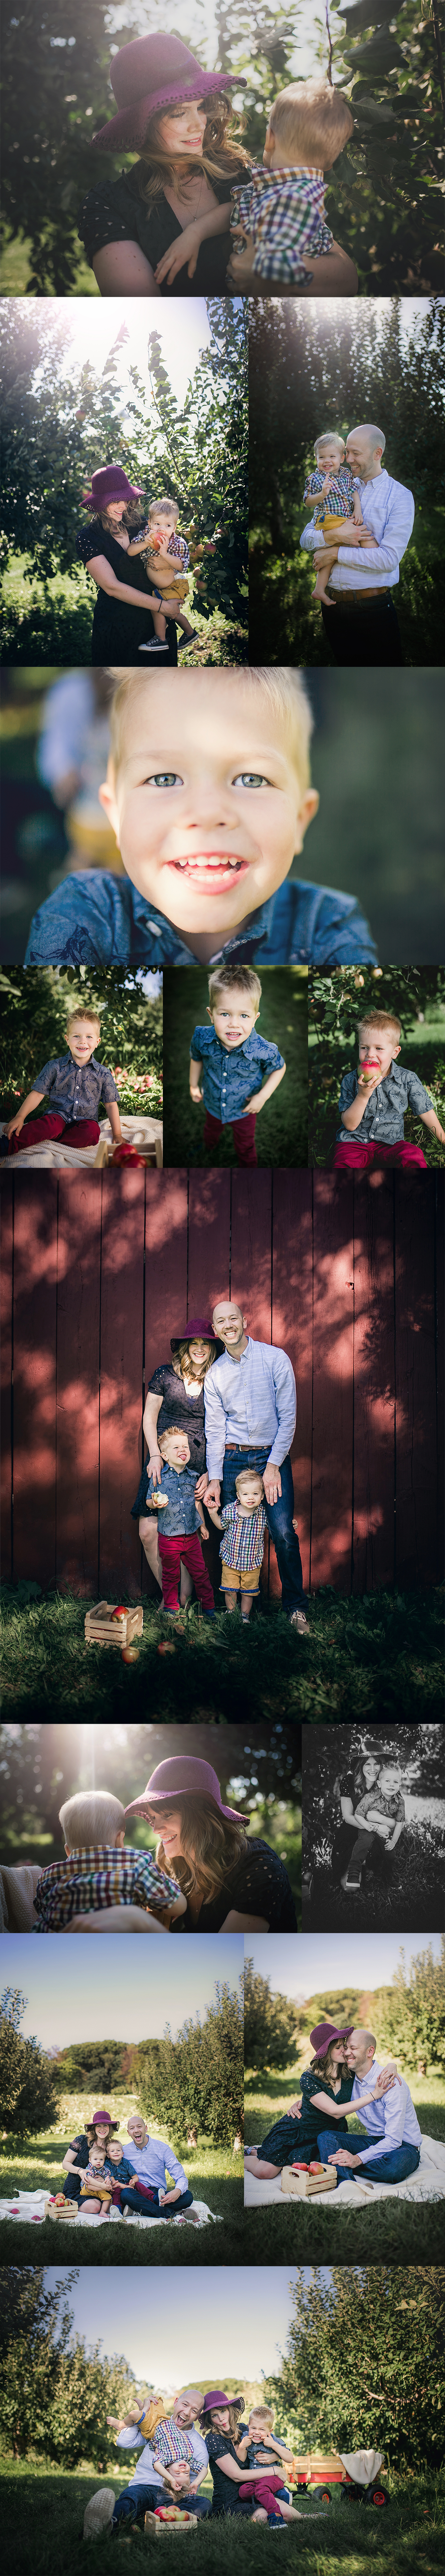 Bethany Birnie Minneapolis Family photographer